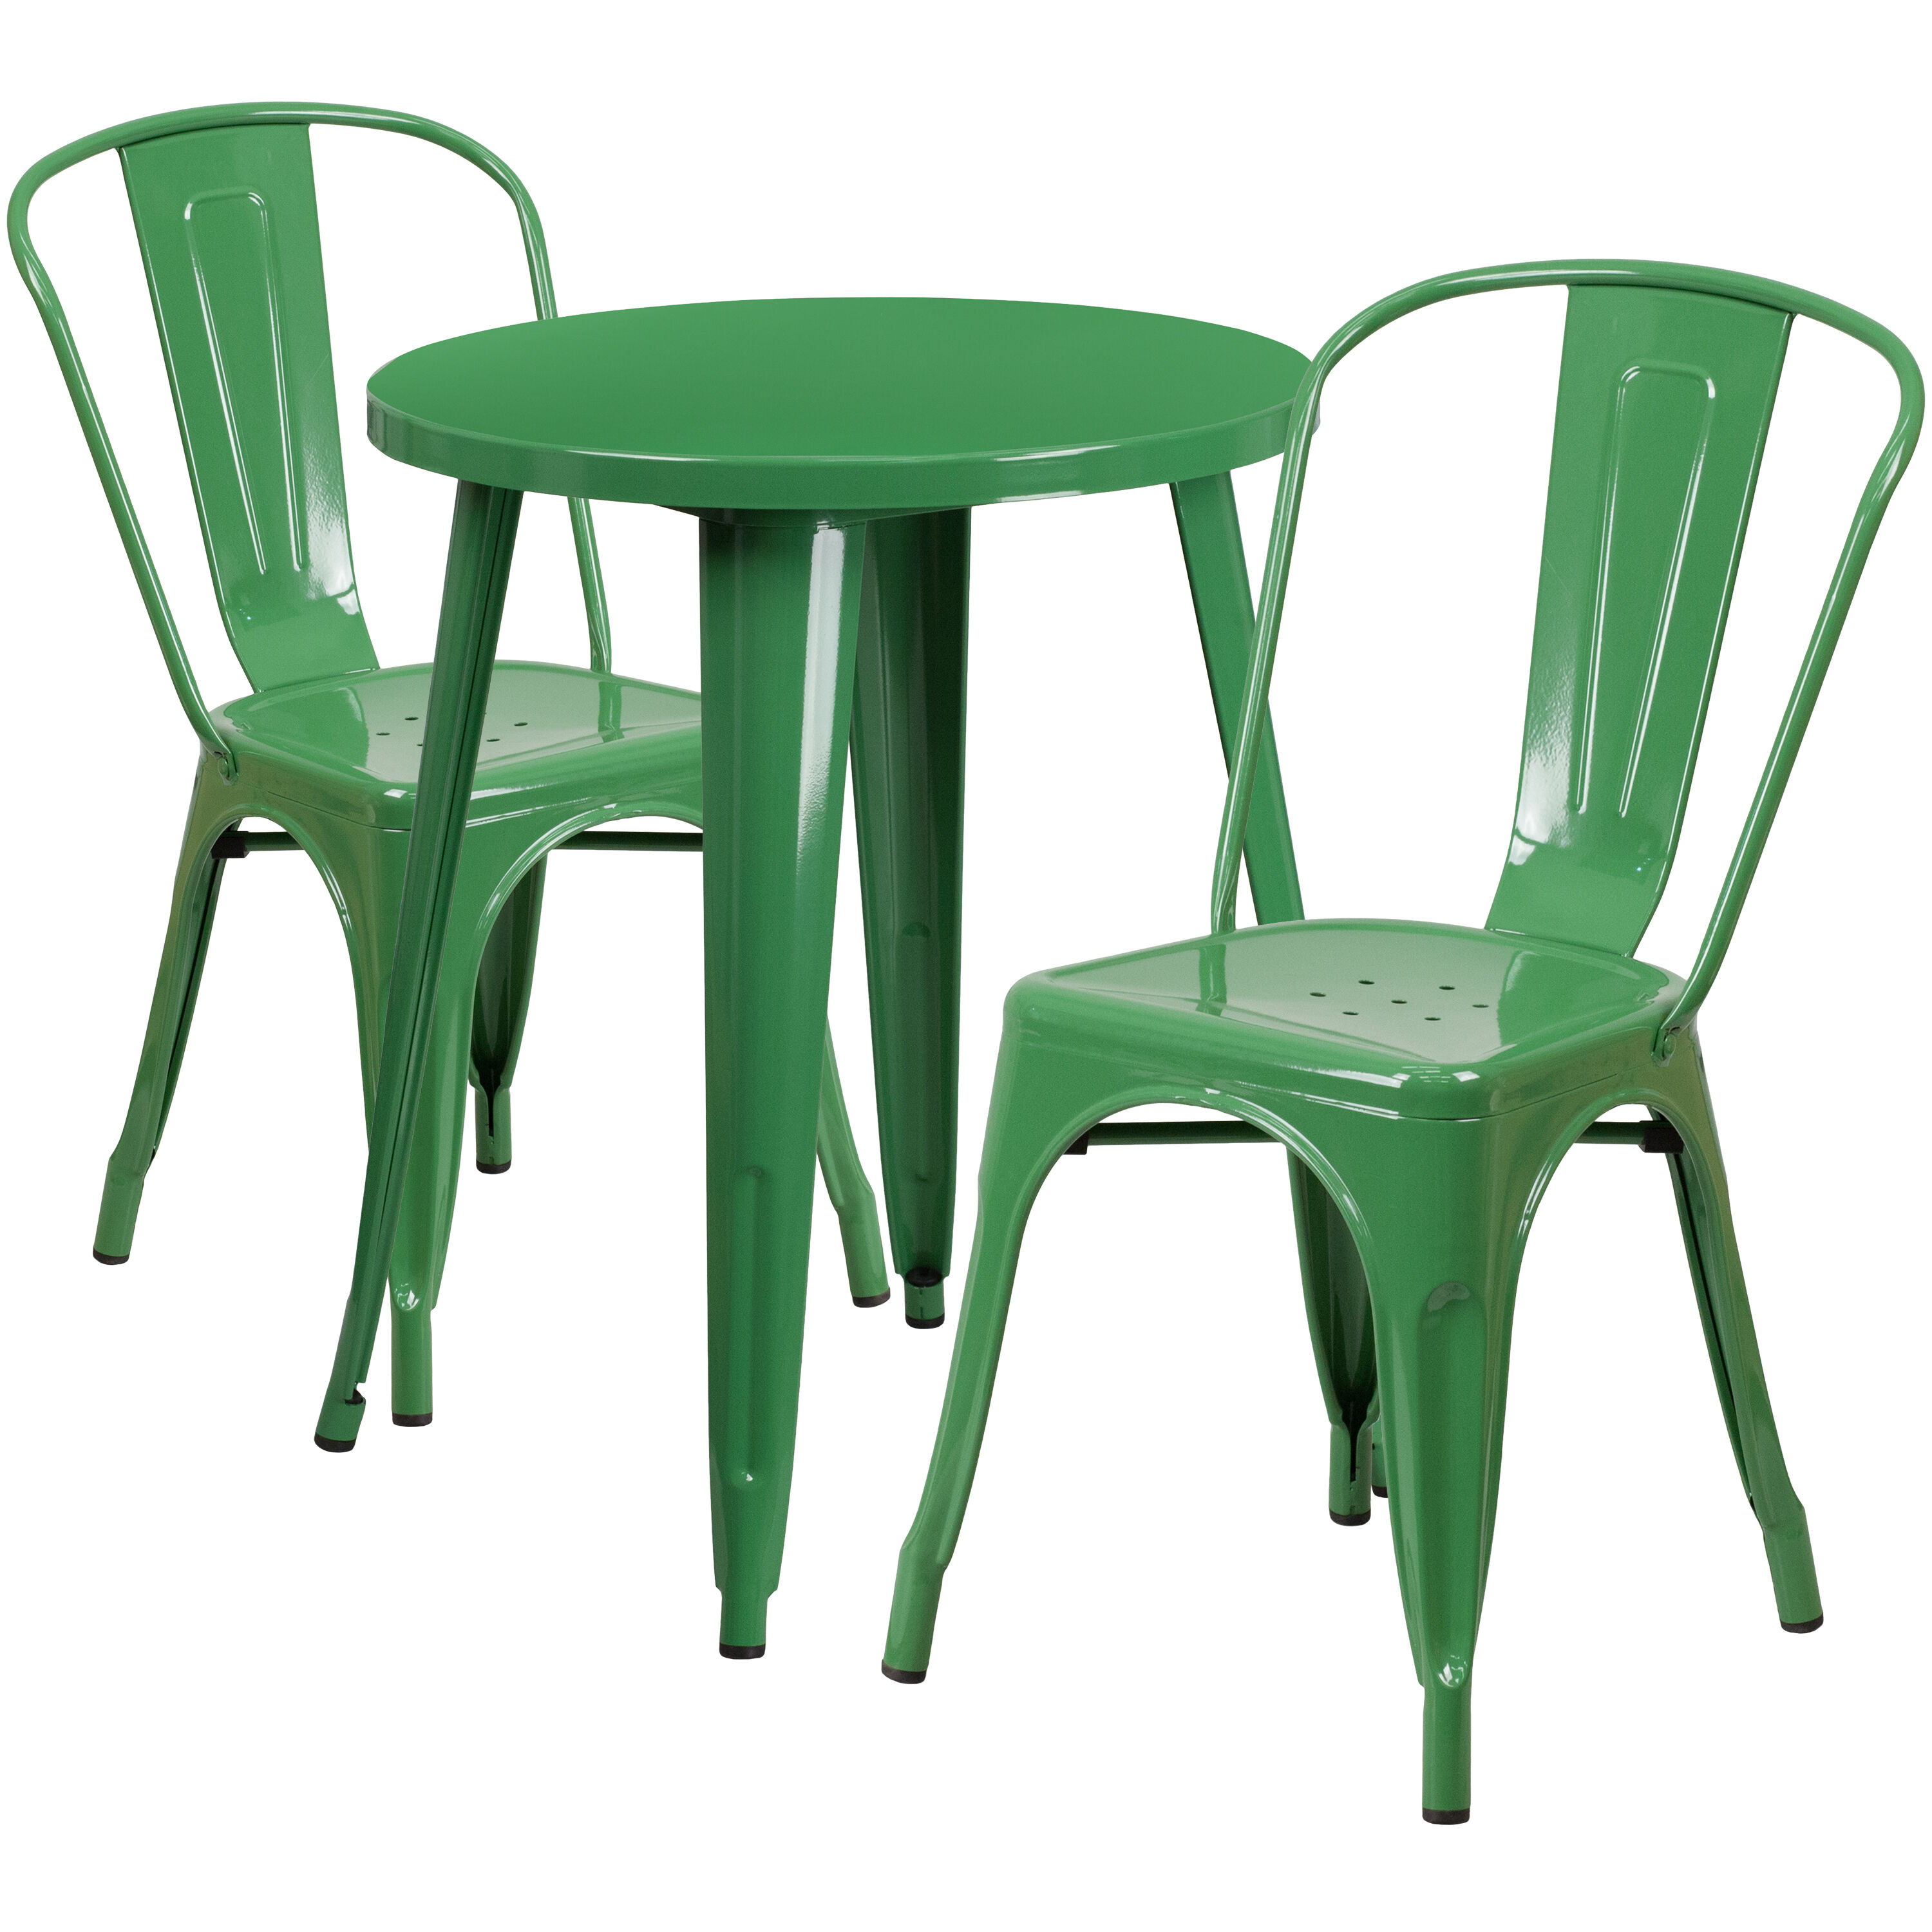 green metal bistro chairs how to make wooden beach 24rd table set ch 51080th 2 18cafe gn gg